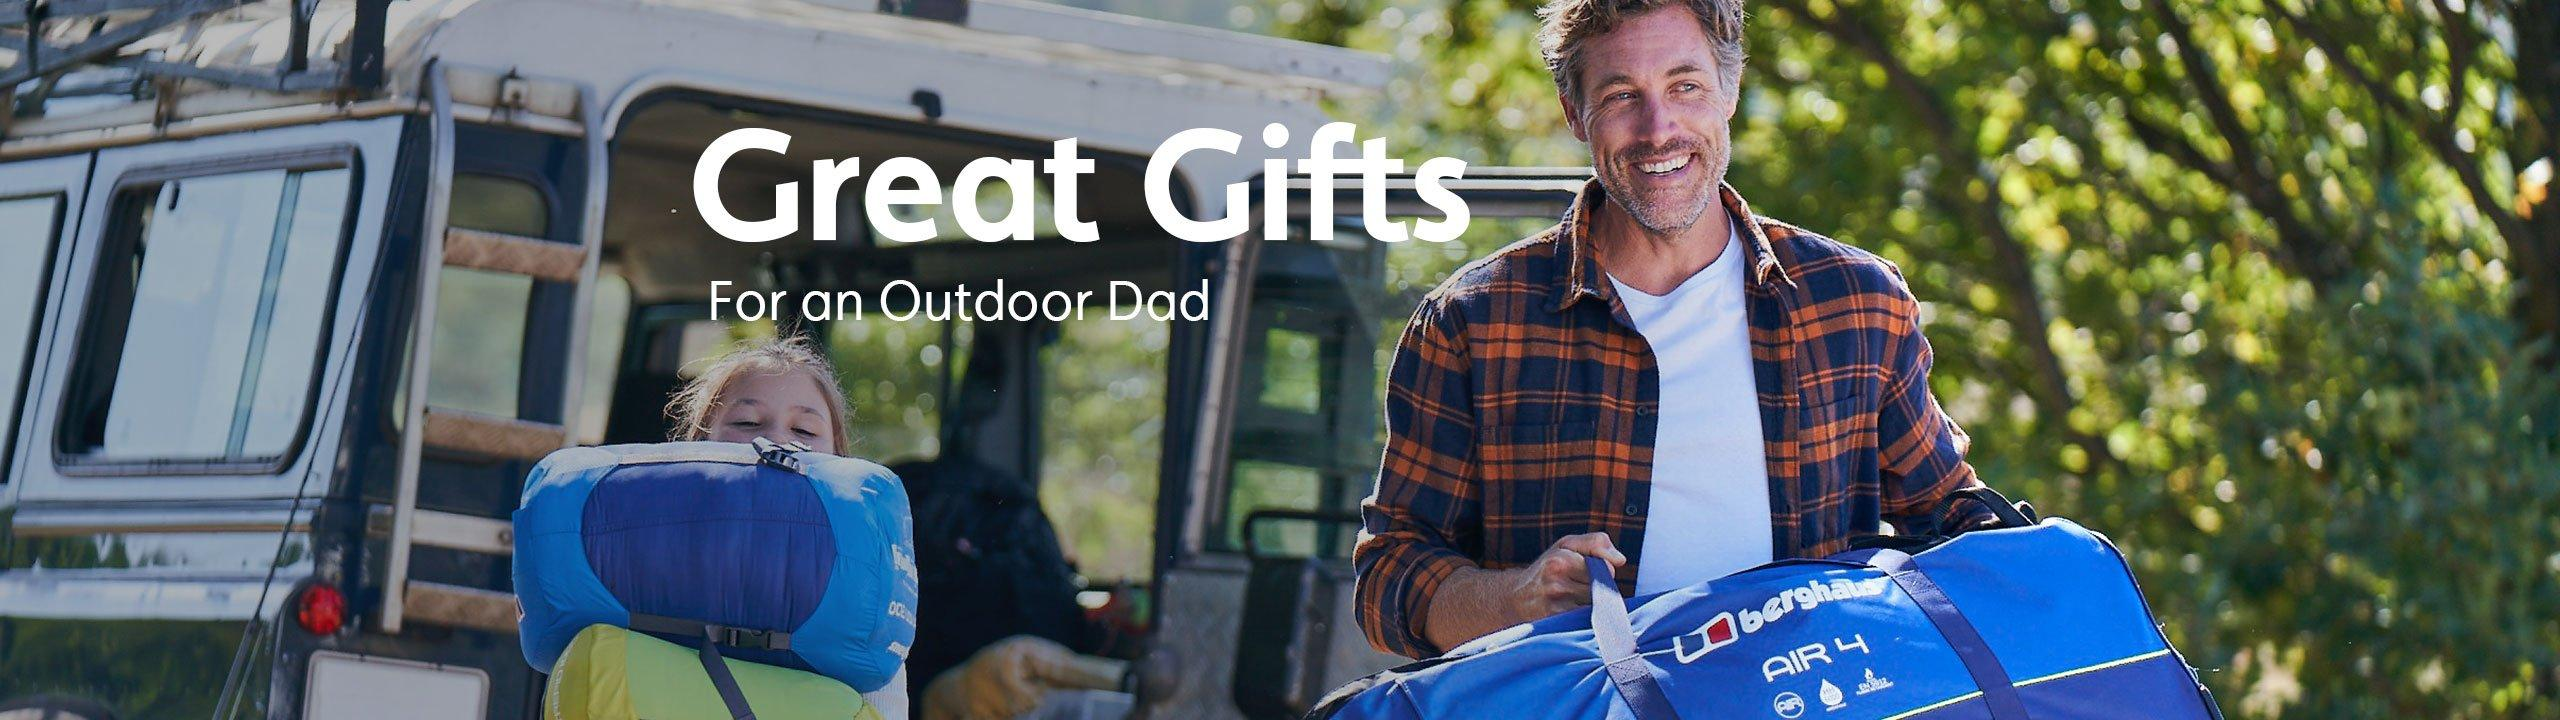 Shop Gifts For Dad